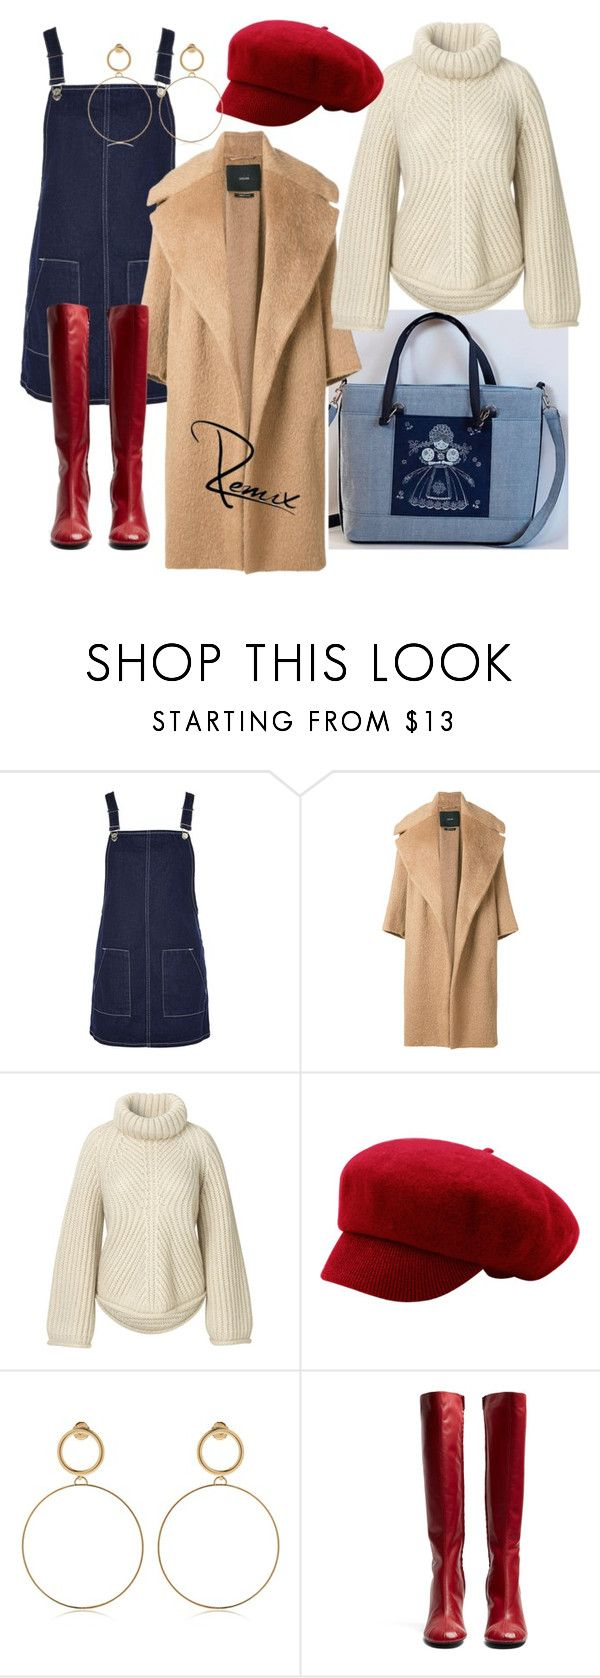 """Fall(ing) in love"" by aleva on Polyvore featuring Topshop, MaxMara, Maria Francesca Pepe and Joseph"